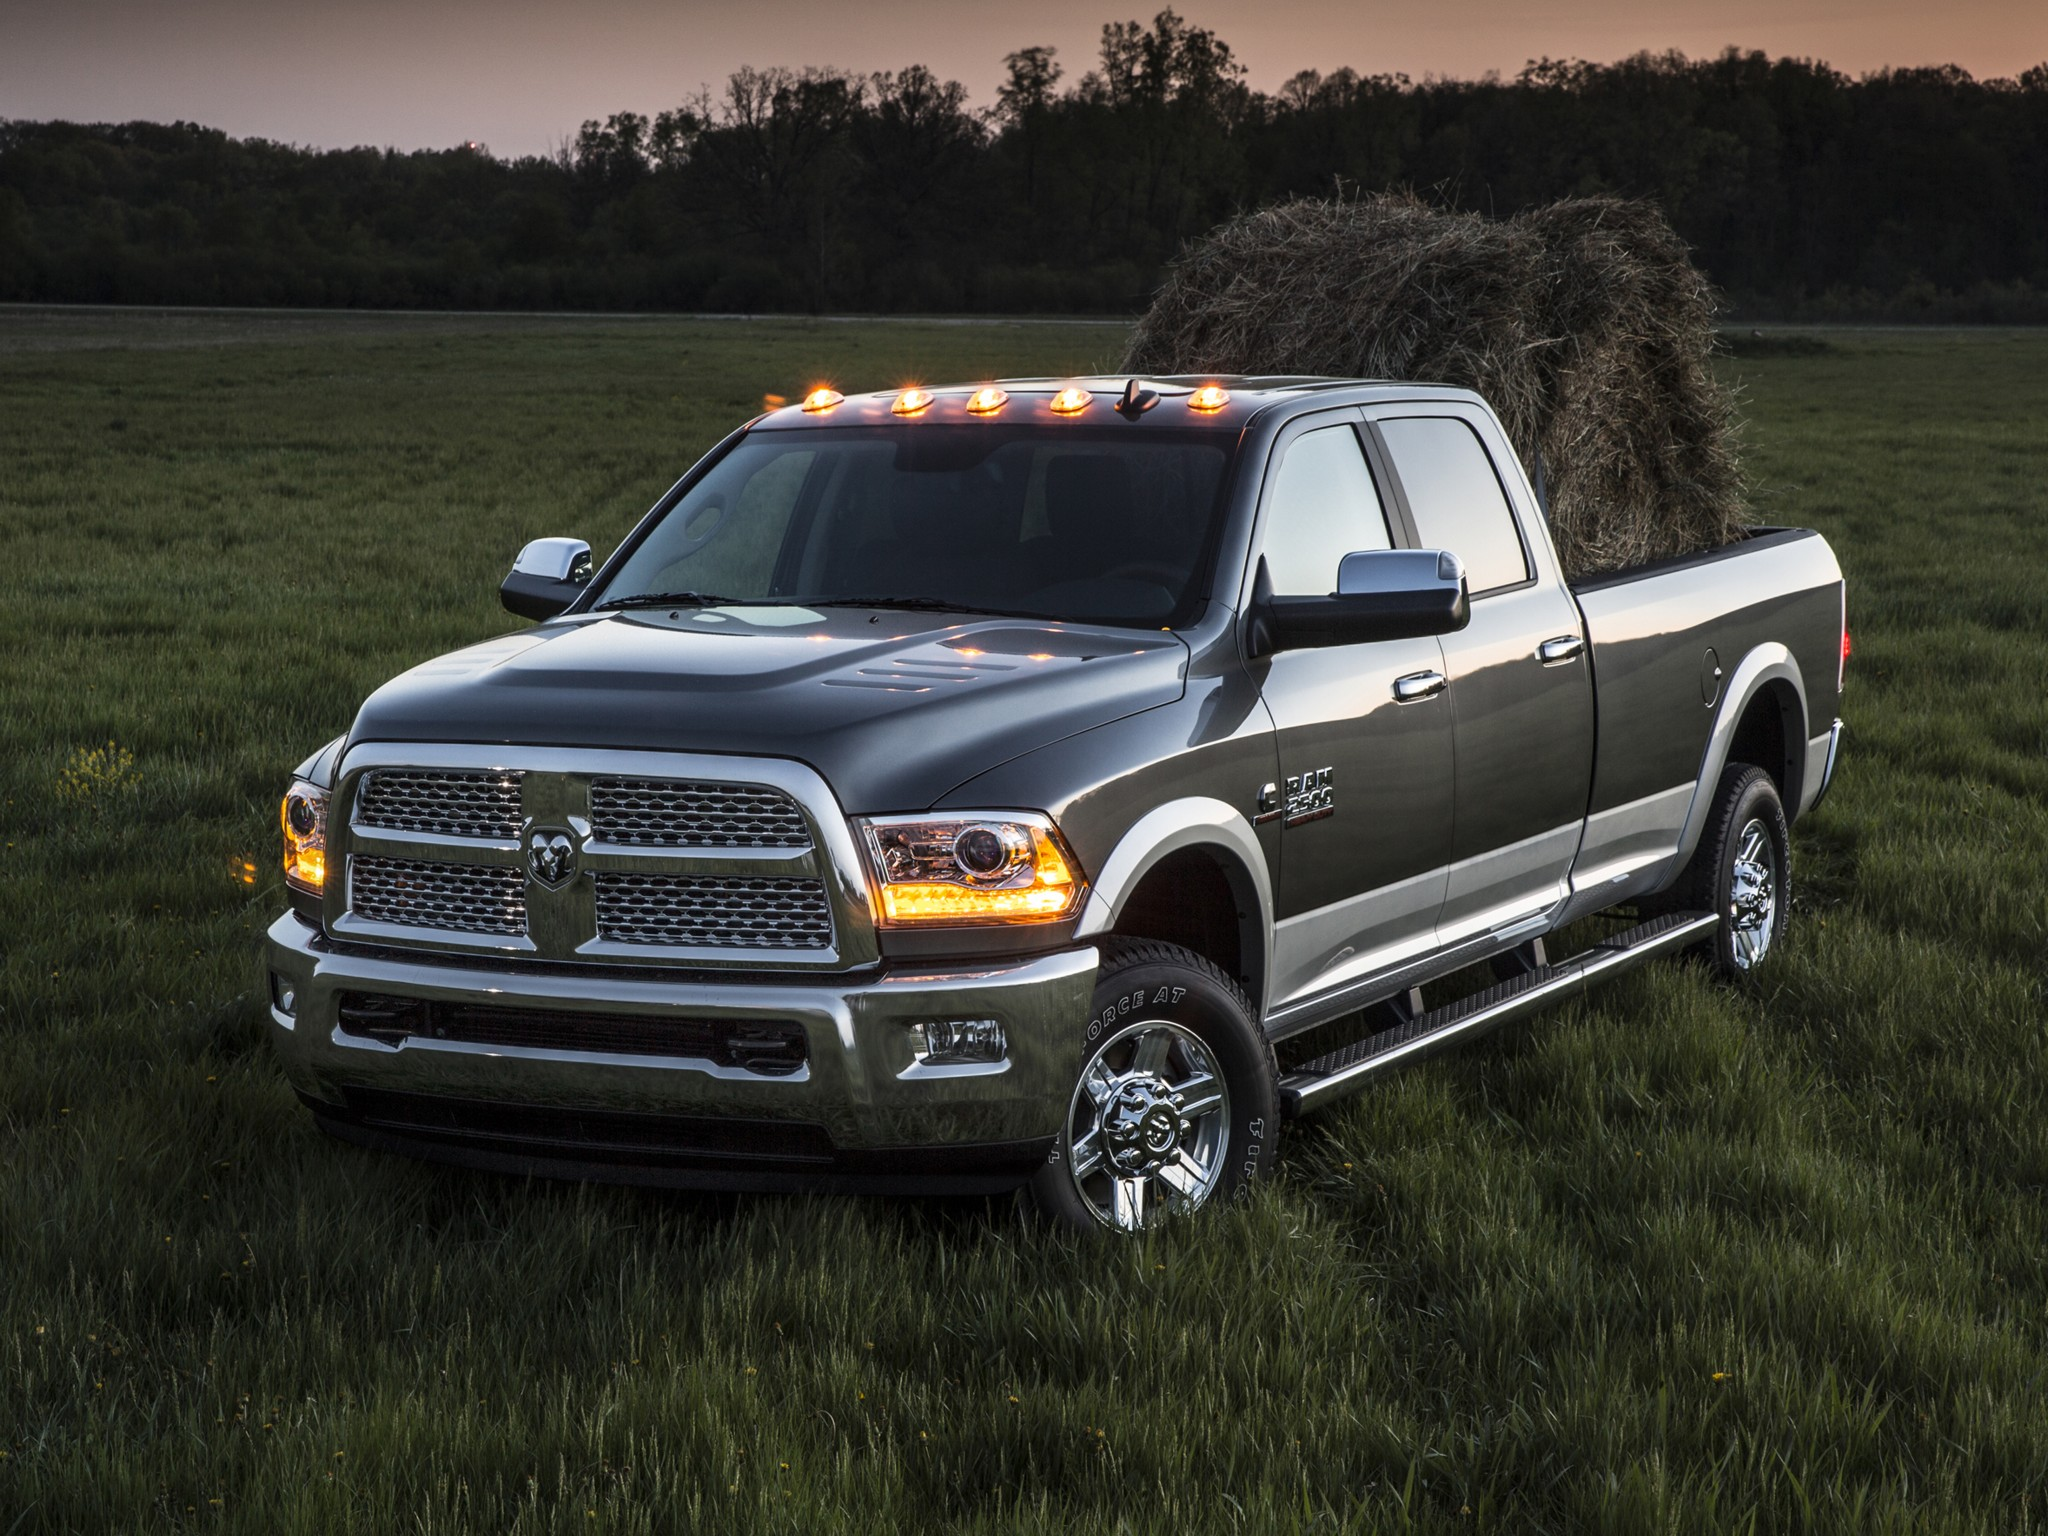 RAM Trucks 2500 Crew Cab specs & photos - 2013, 2014, 2015 ...